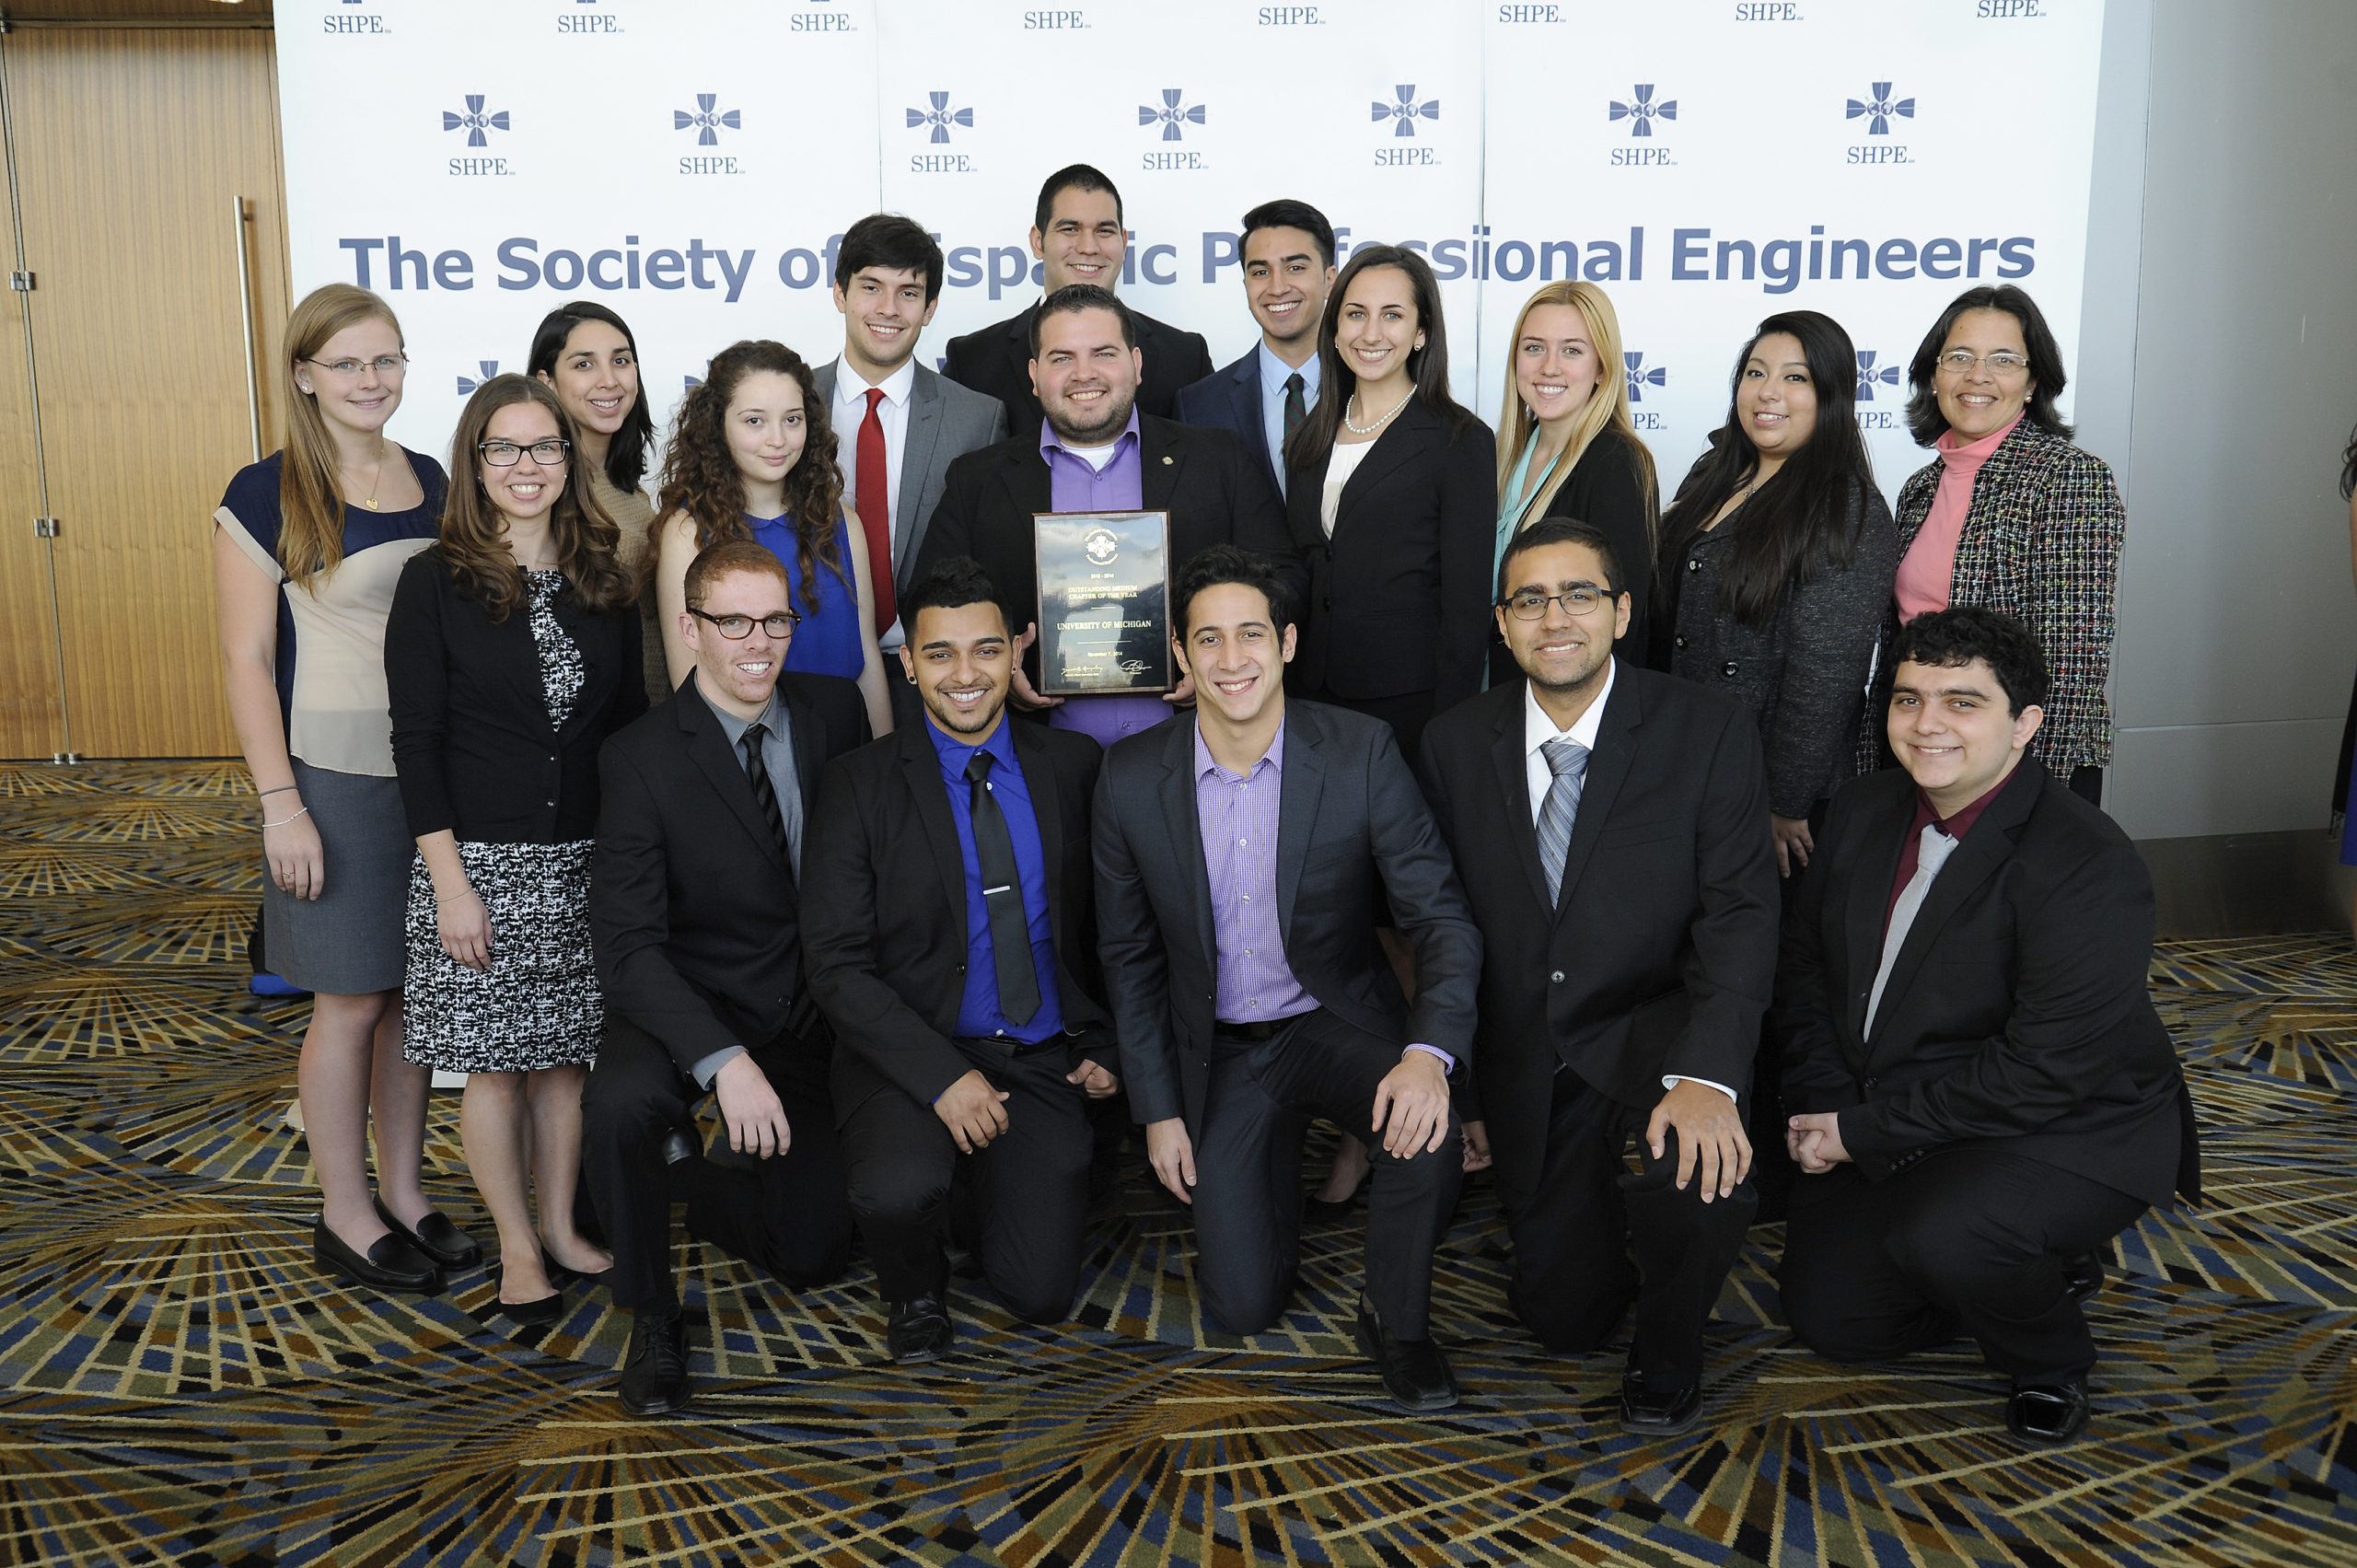 image of SHPE officers at the 2014 National Conference in Detroit